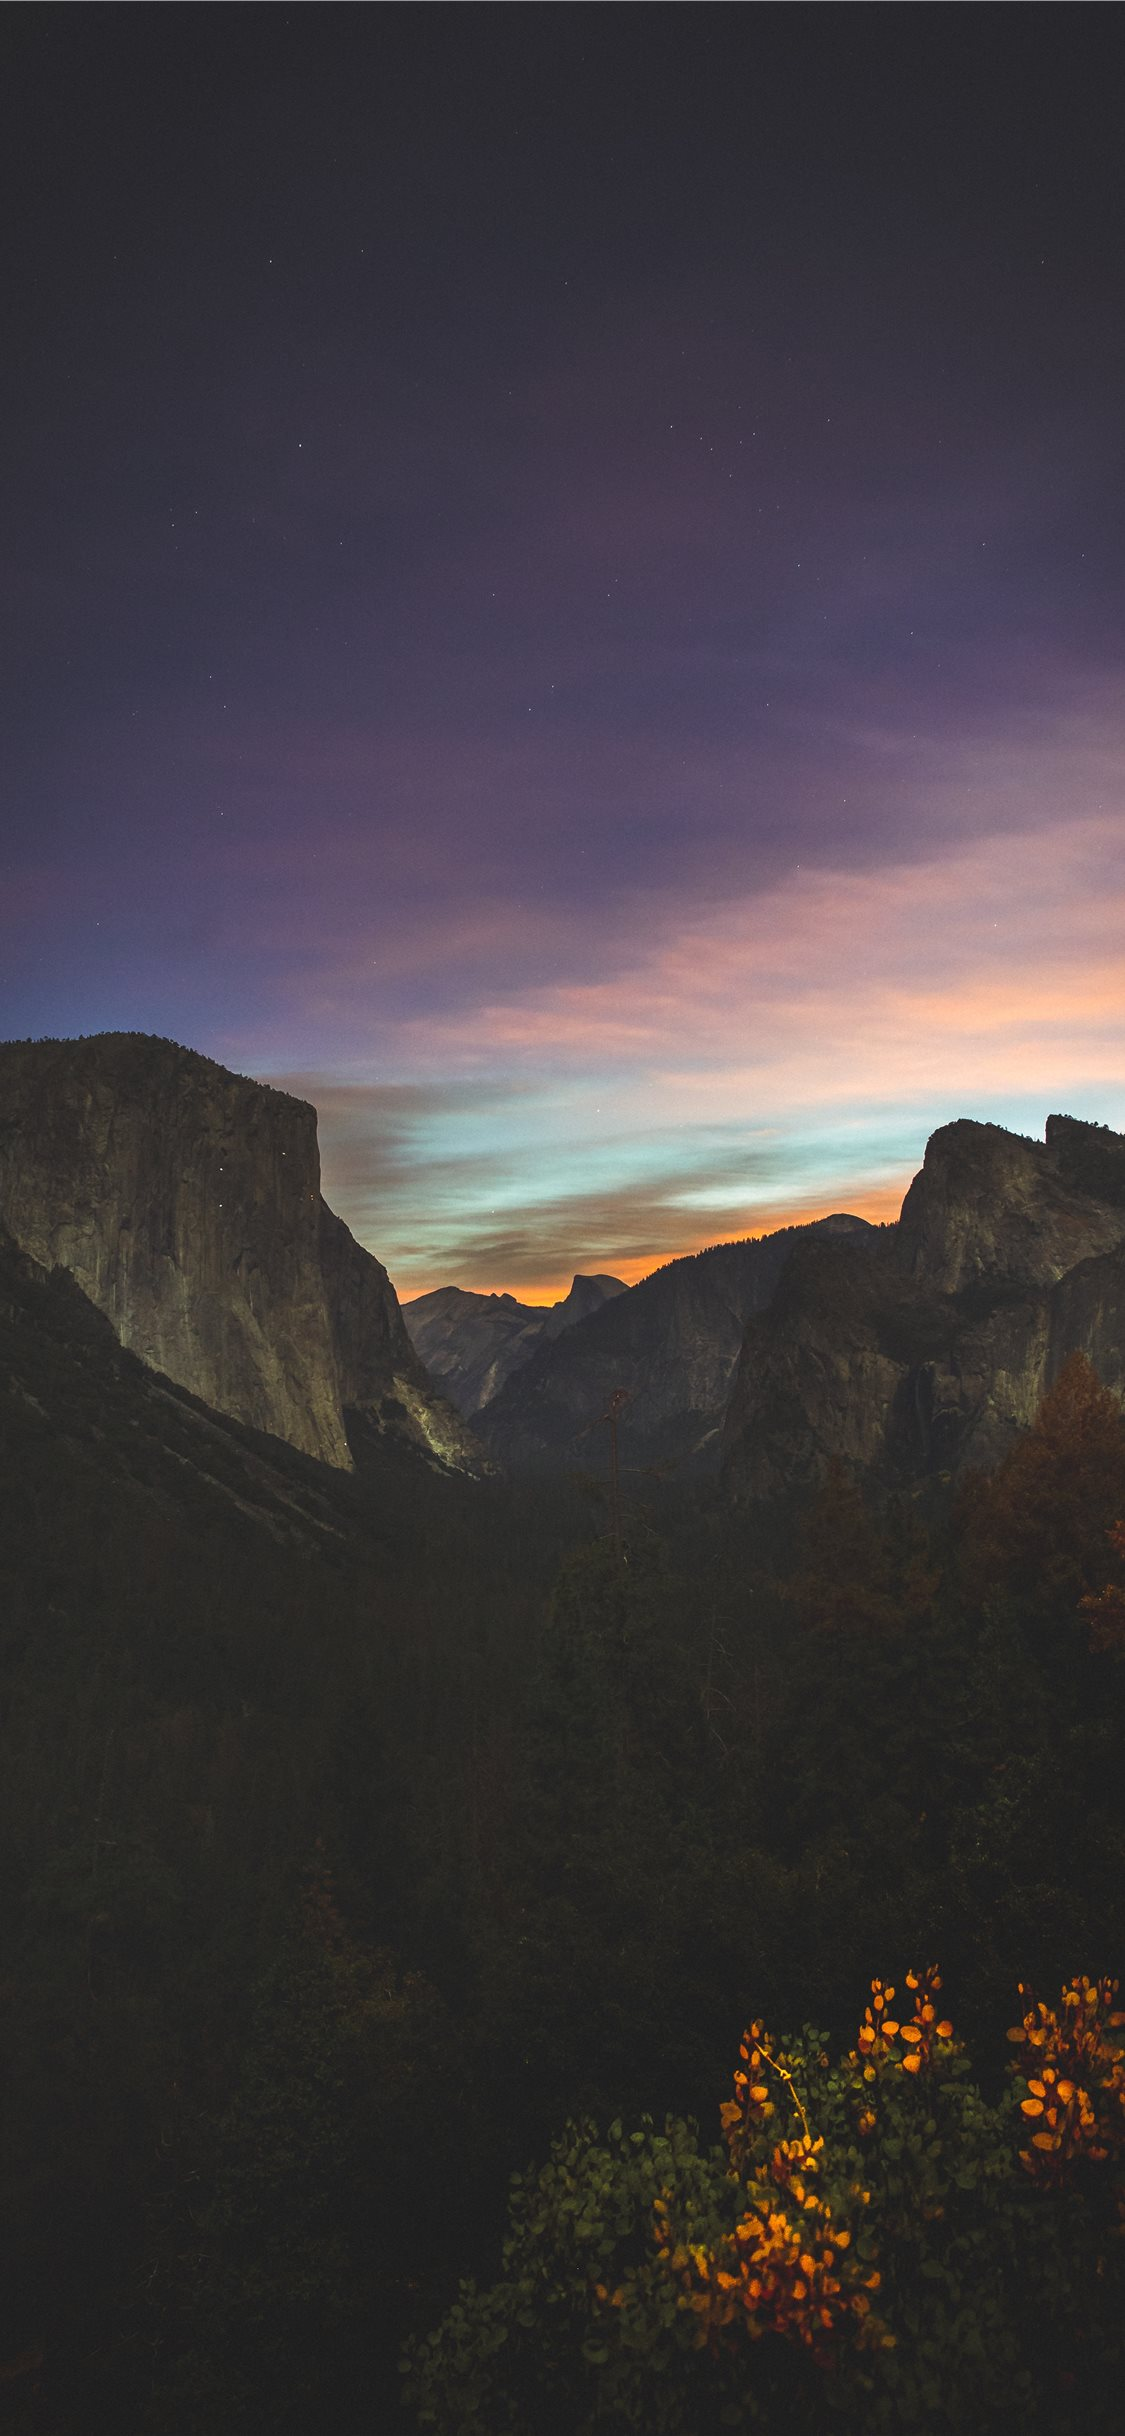 Night Mountain Wallpapers Posted By John Cunningham